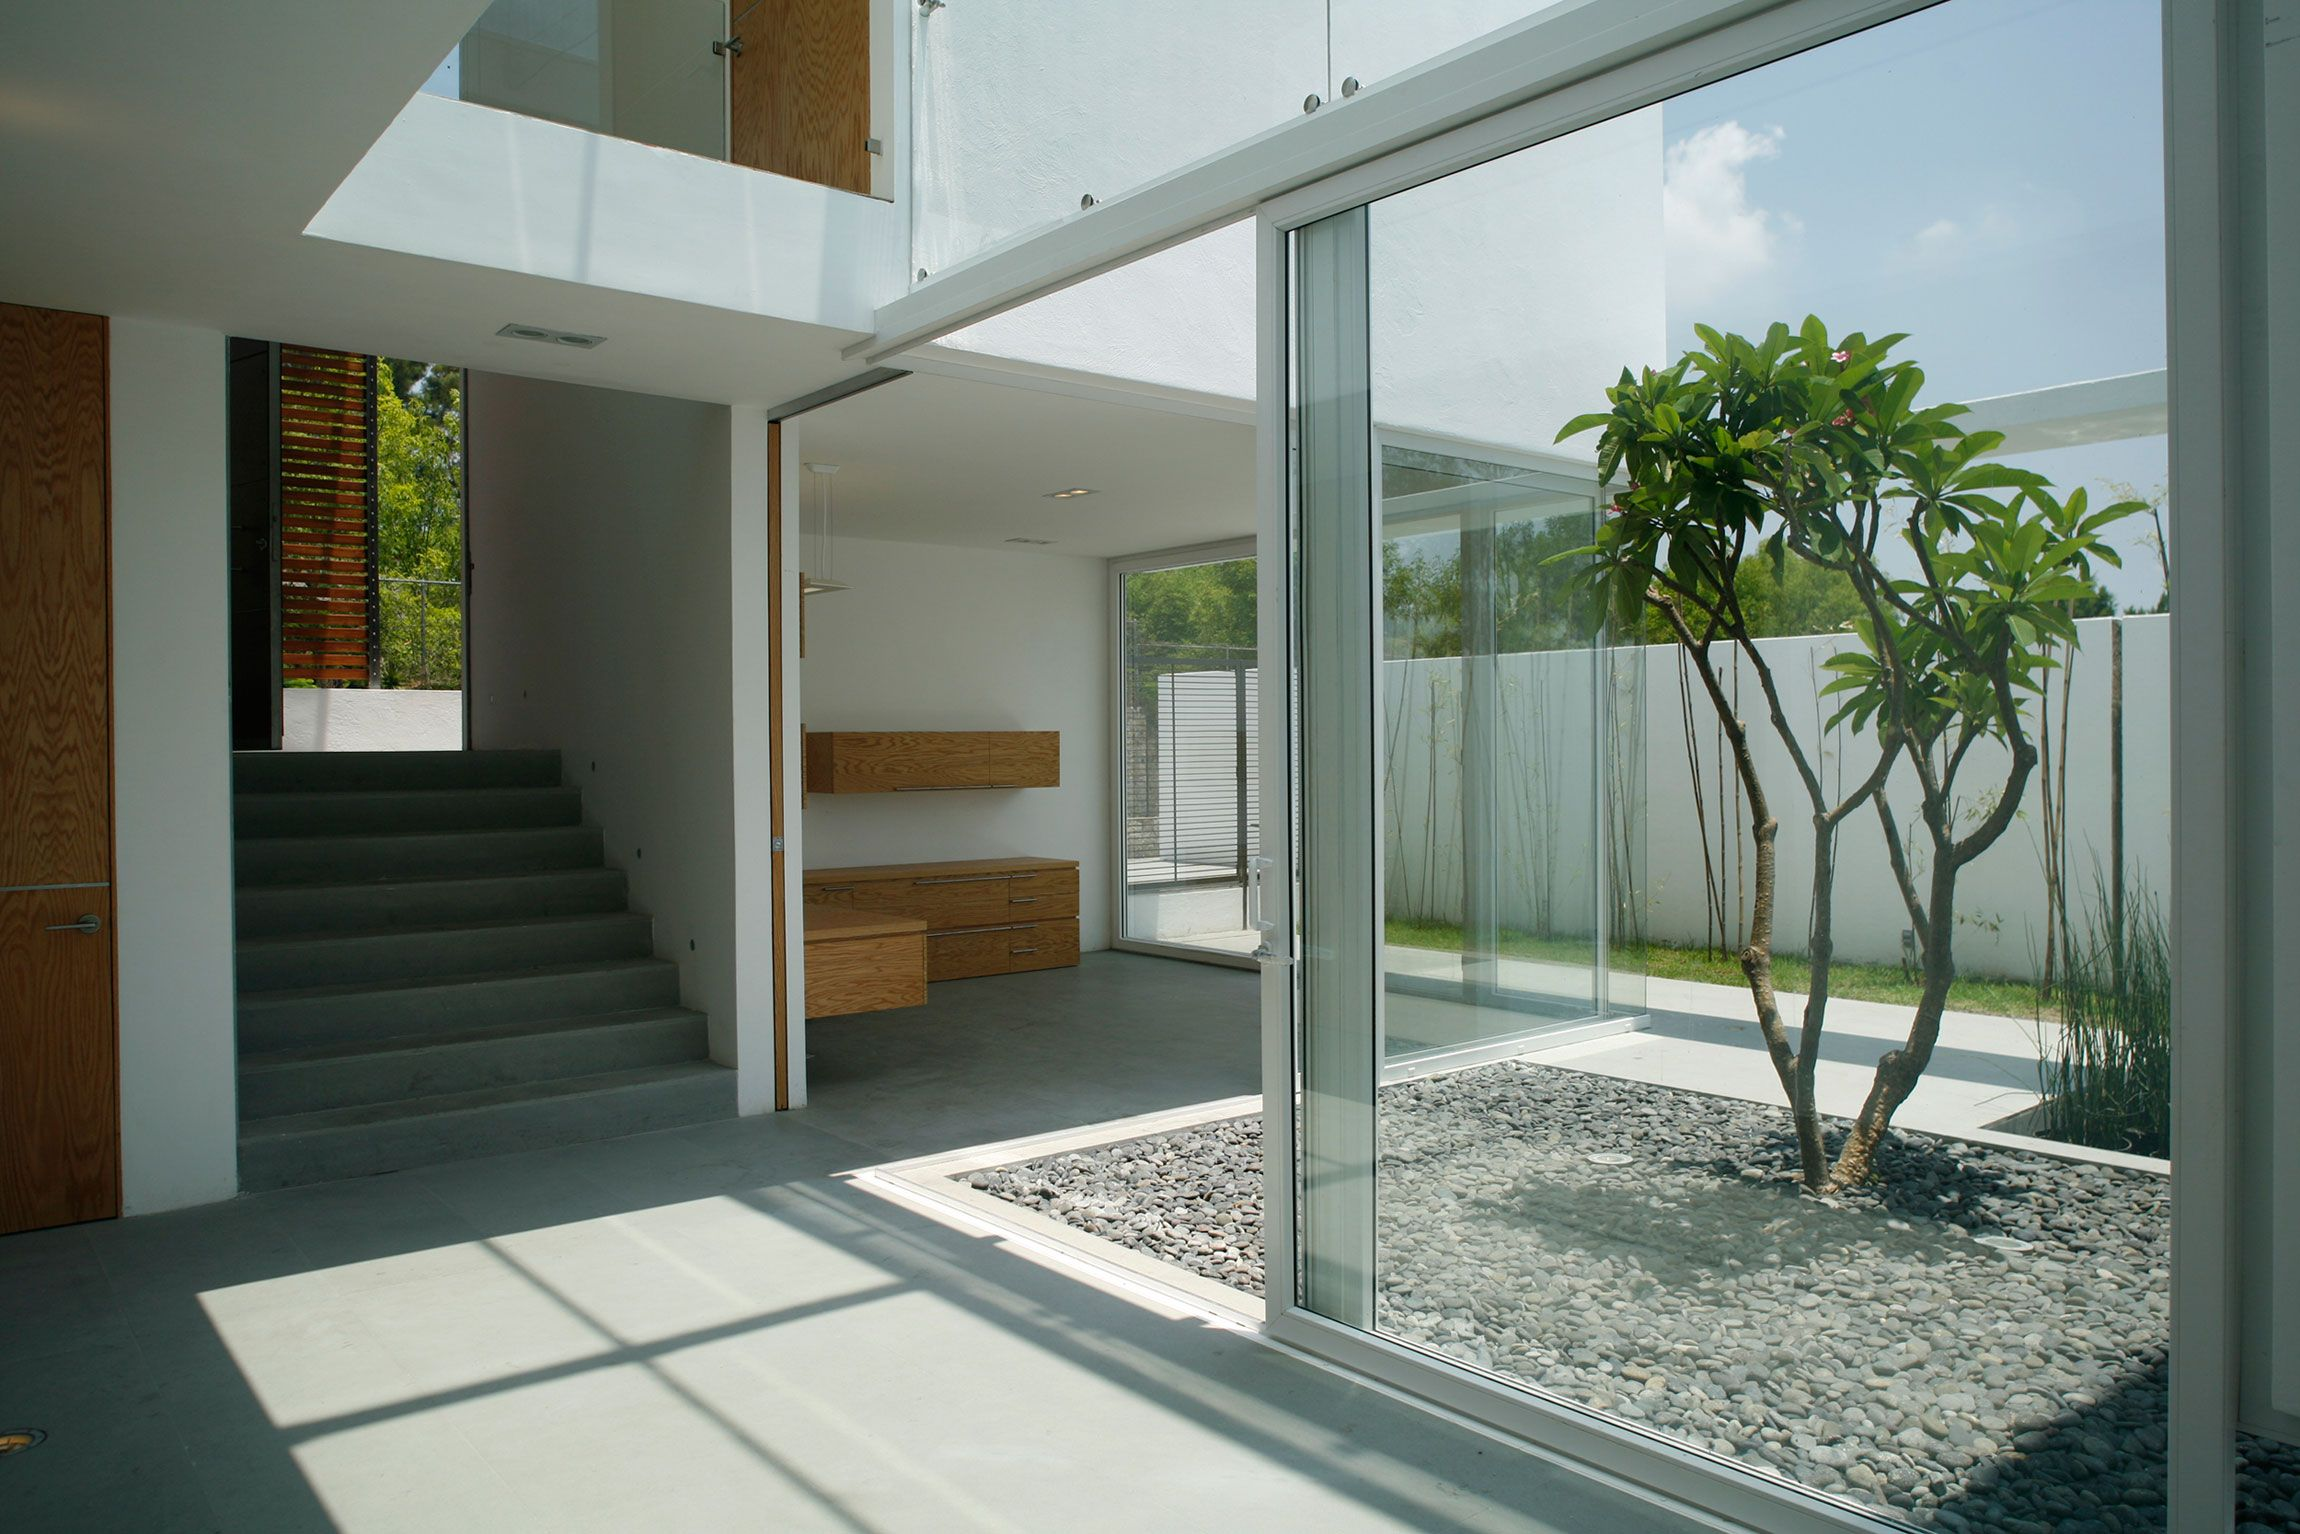 Architecture mesmerizing small courtyard modern minimalist for Modern glass house plans